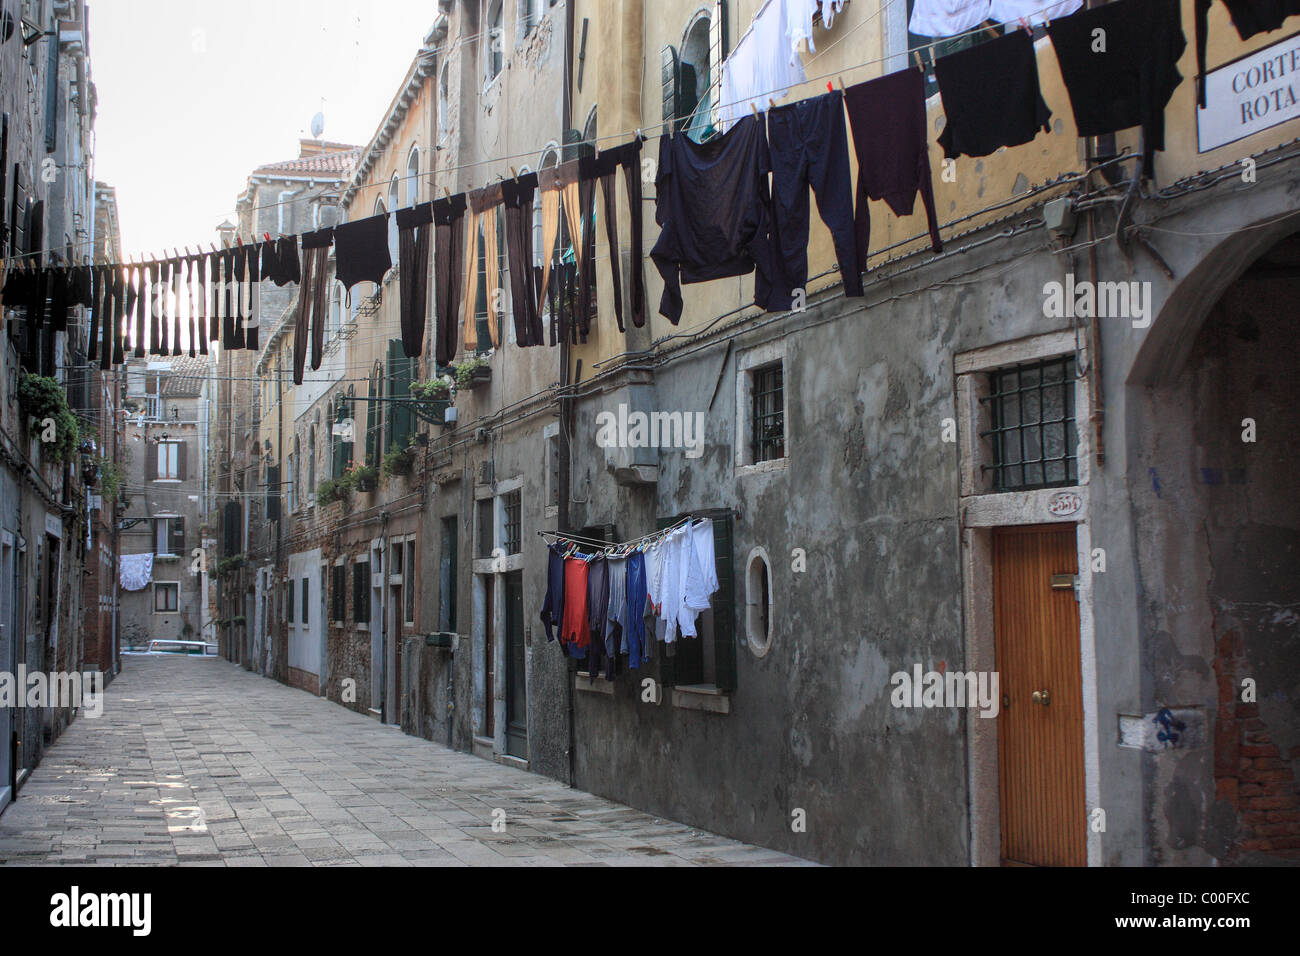 Clothesline in a dark street - Stock Image